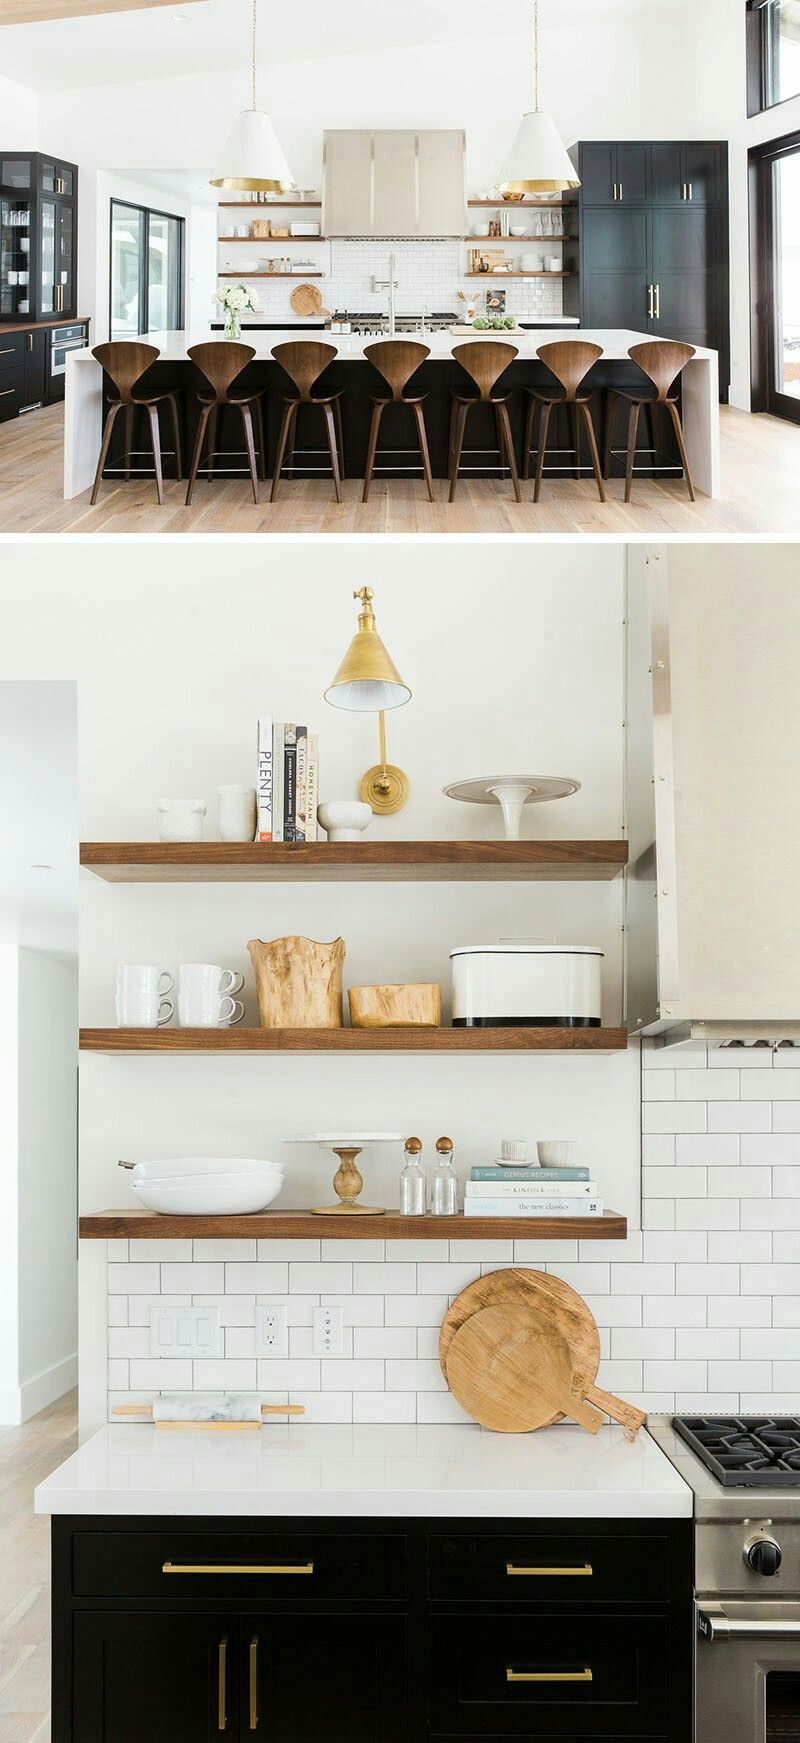 Pinterest Small Kitchen Design Mesmerizing Probably One Of My Top 12 Favorite Kitchens On Pinterest 2131 3